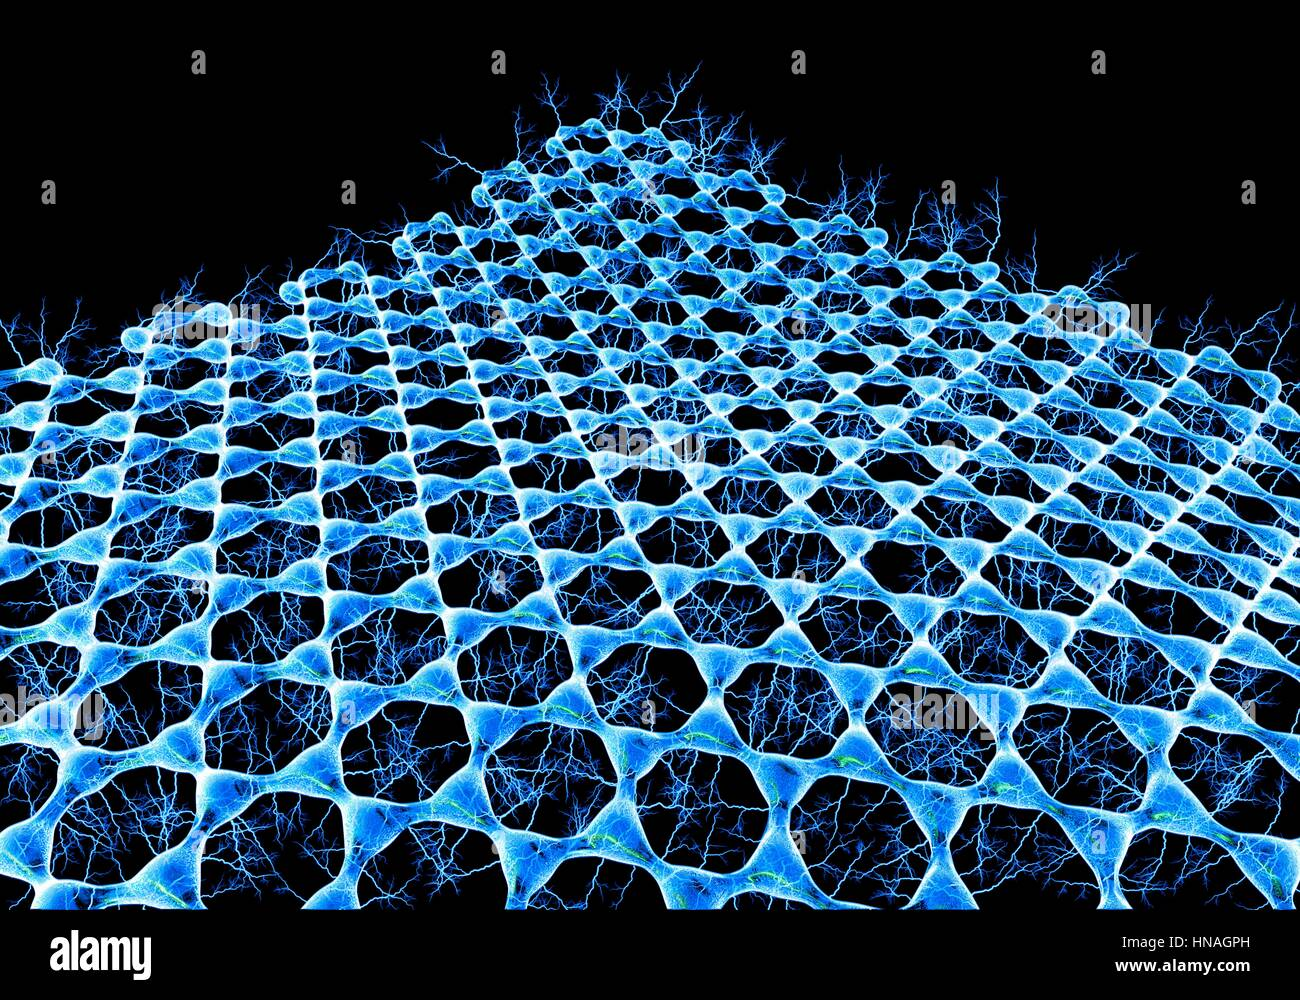 Graphene sheet. Illustration of the atomic-scale molecular structure of graphene, a single hexagonal layer of graphite. - Stock Image